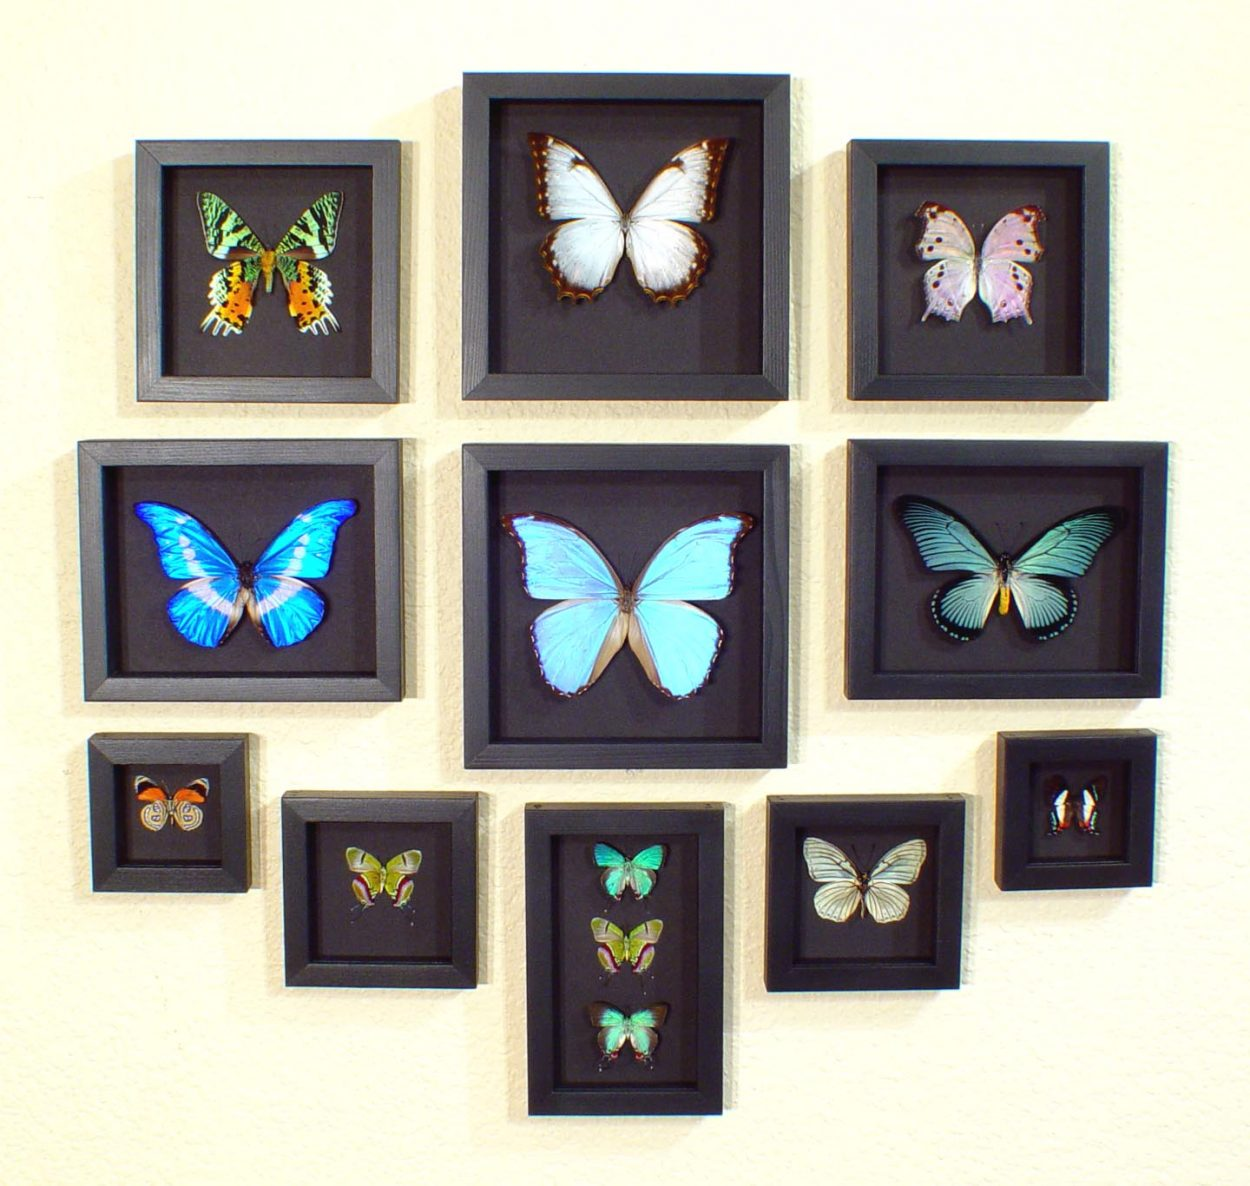 Moonlight Displays Real Framed Butterfly Moth Museum Quality Black Backed Archival Displays